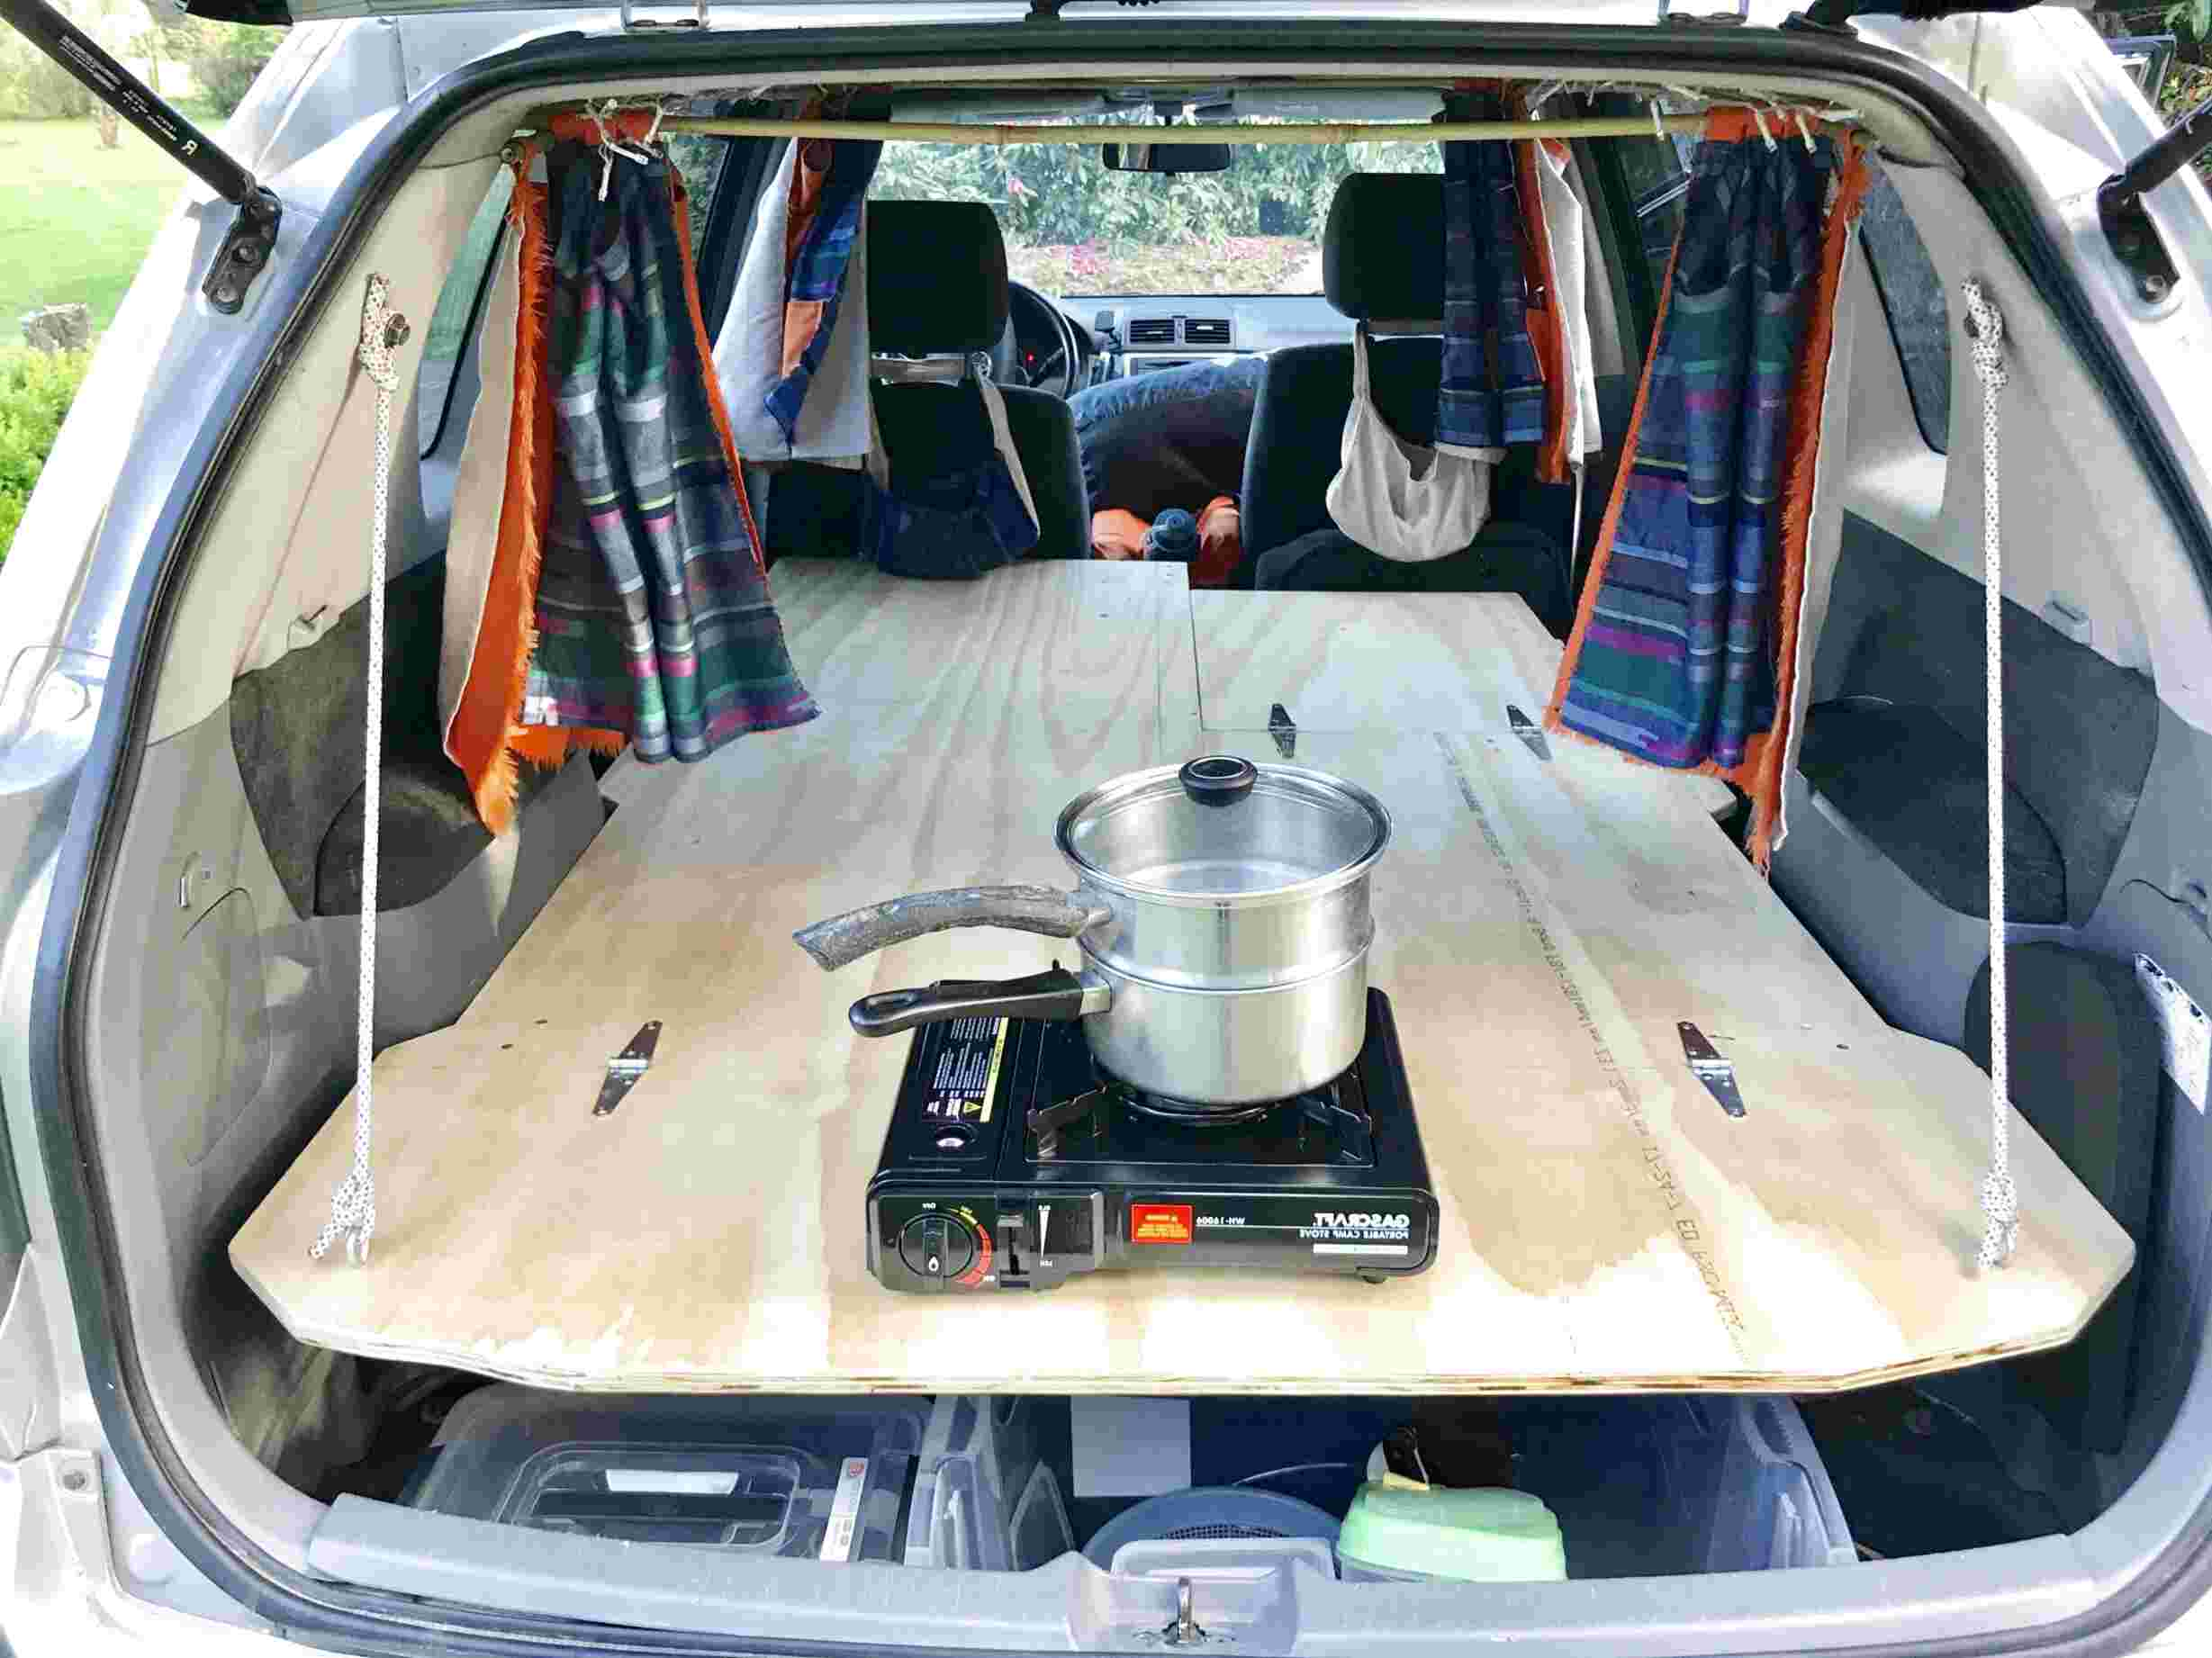 camper wagon for sale